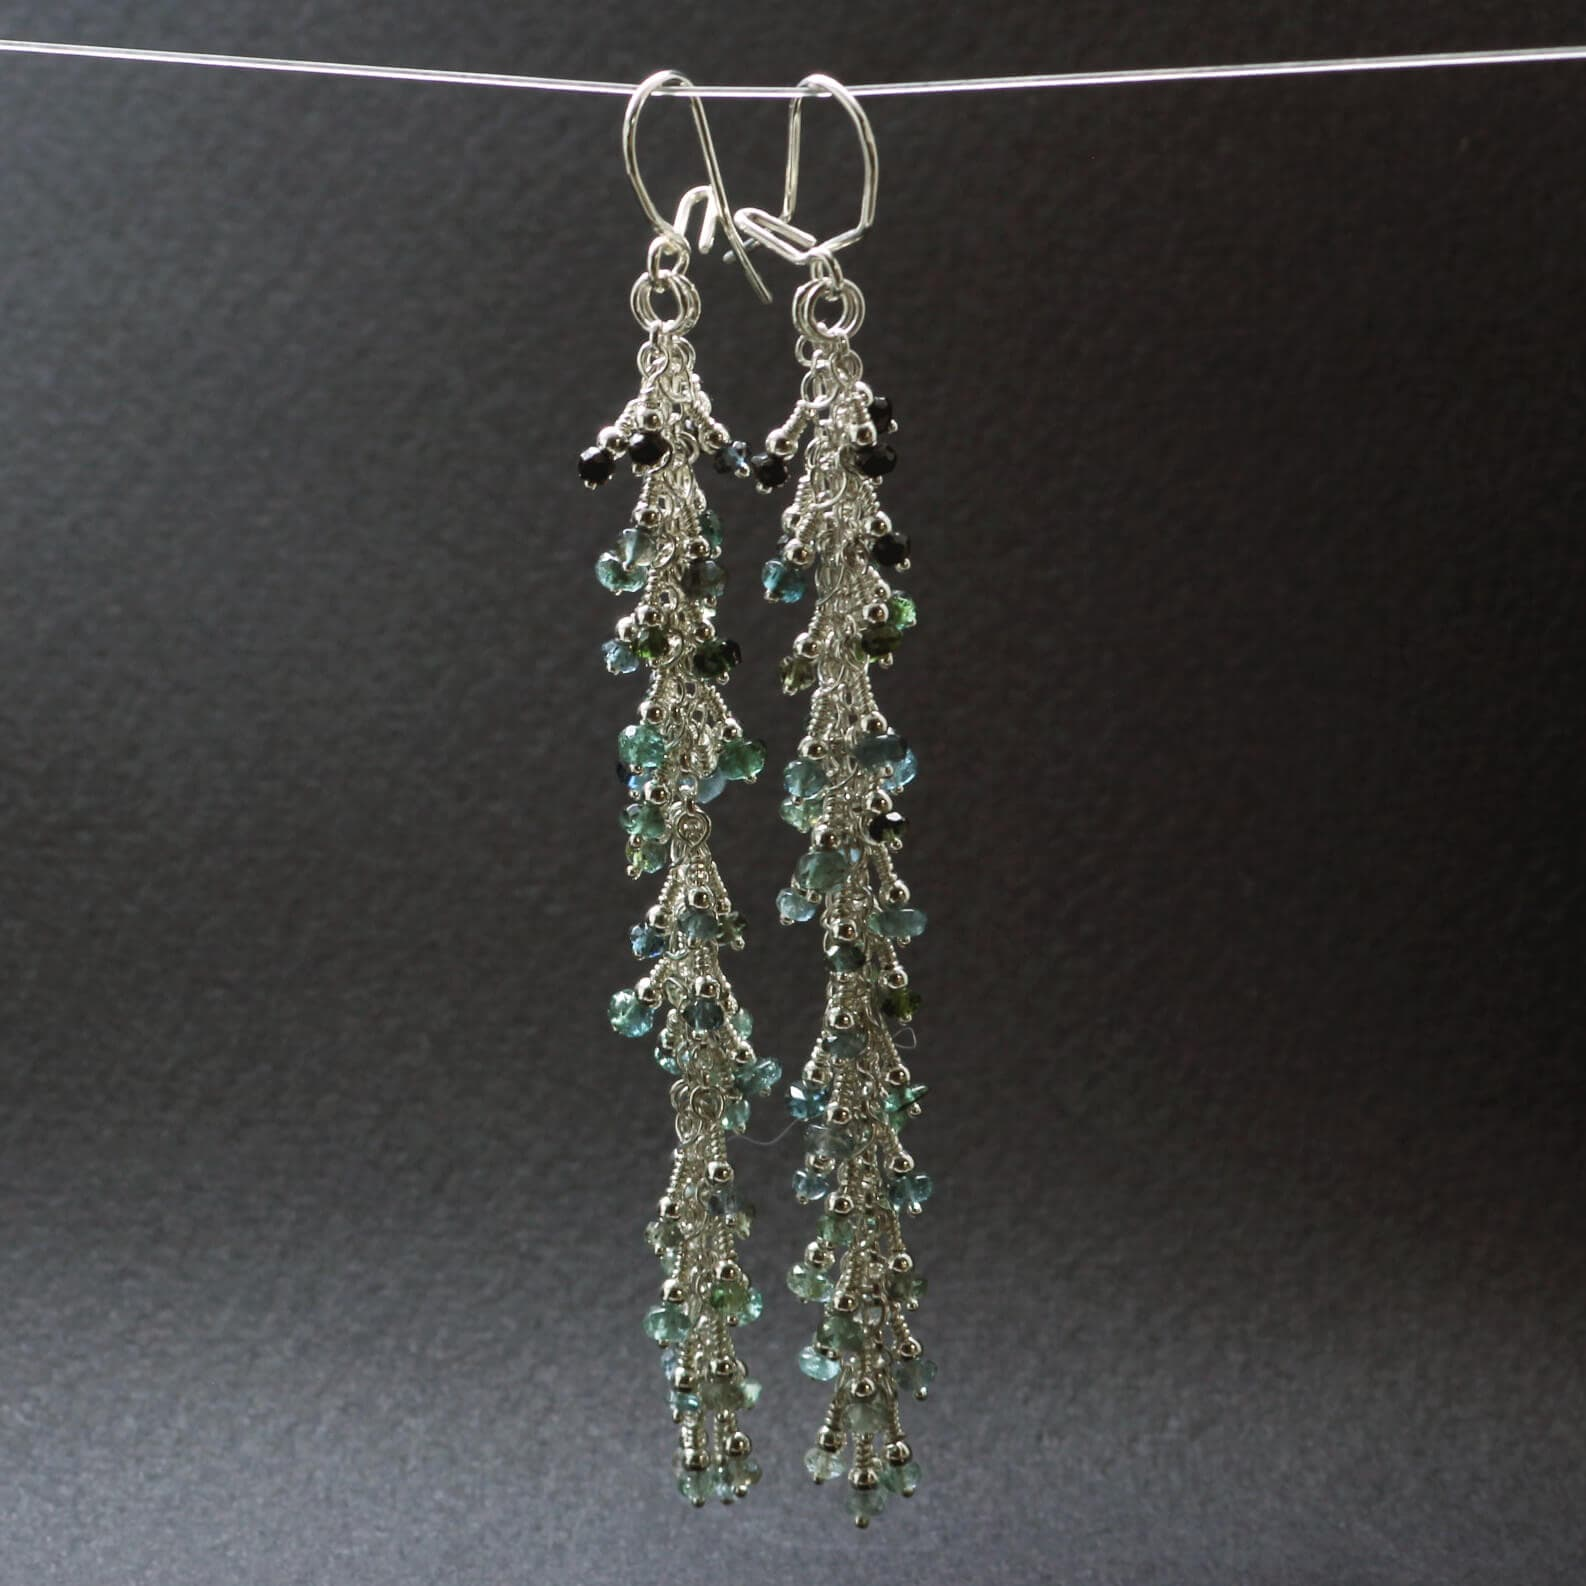 Blue Tourmaline gemstone Silver earrings, handcrafted by Sophie Saunders.